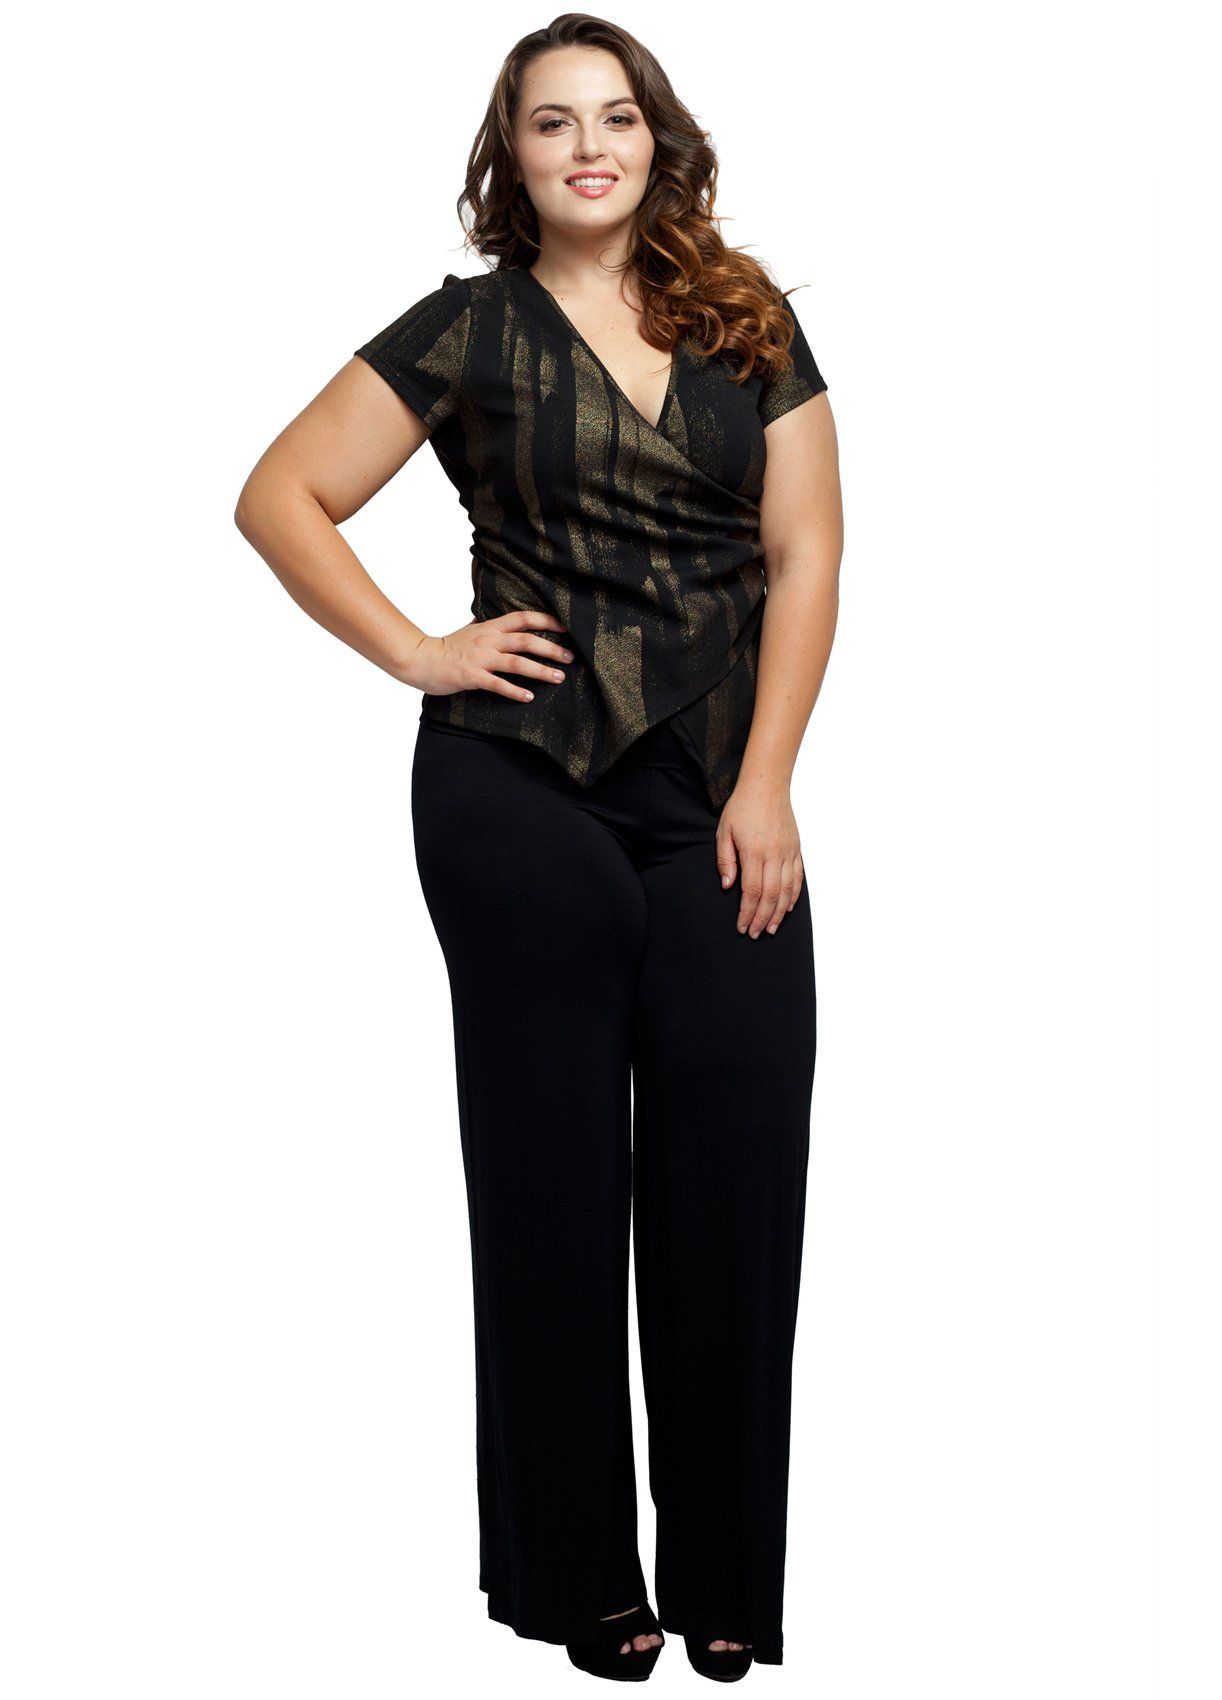 157a97b63a8 Stylzoo Women s Plus Size Stretchy Comfy Palazzo Solid Color Pants at Amazon  Women s Clothing store Plus size plus fashion style fashion diaries makeup  make ...